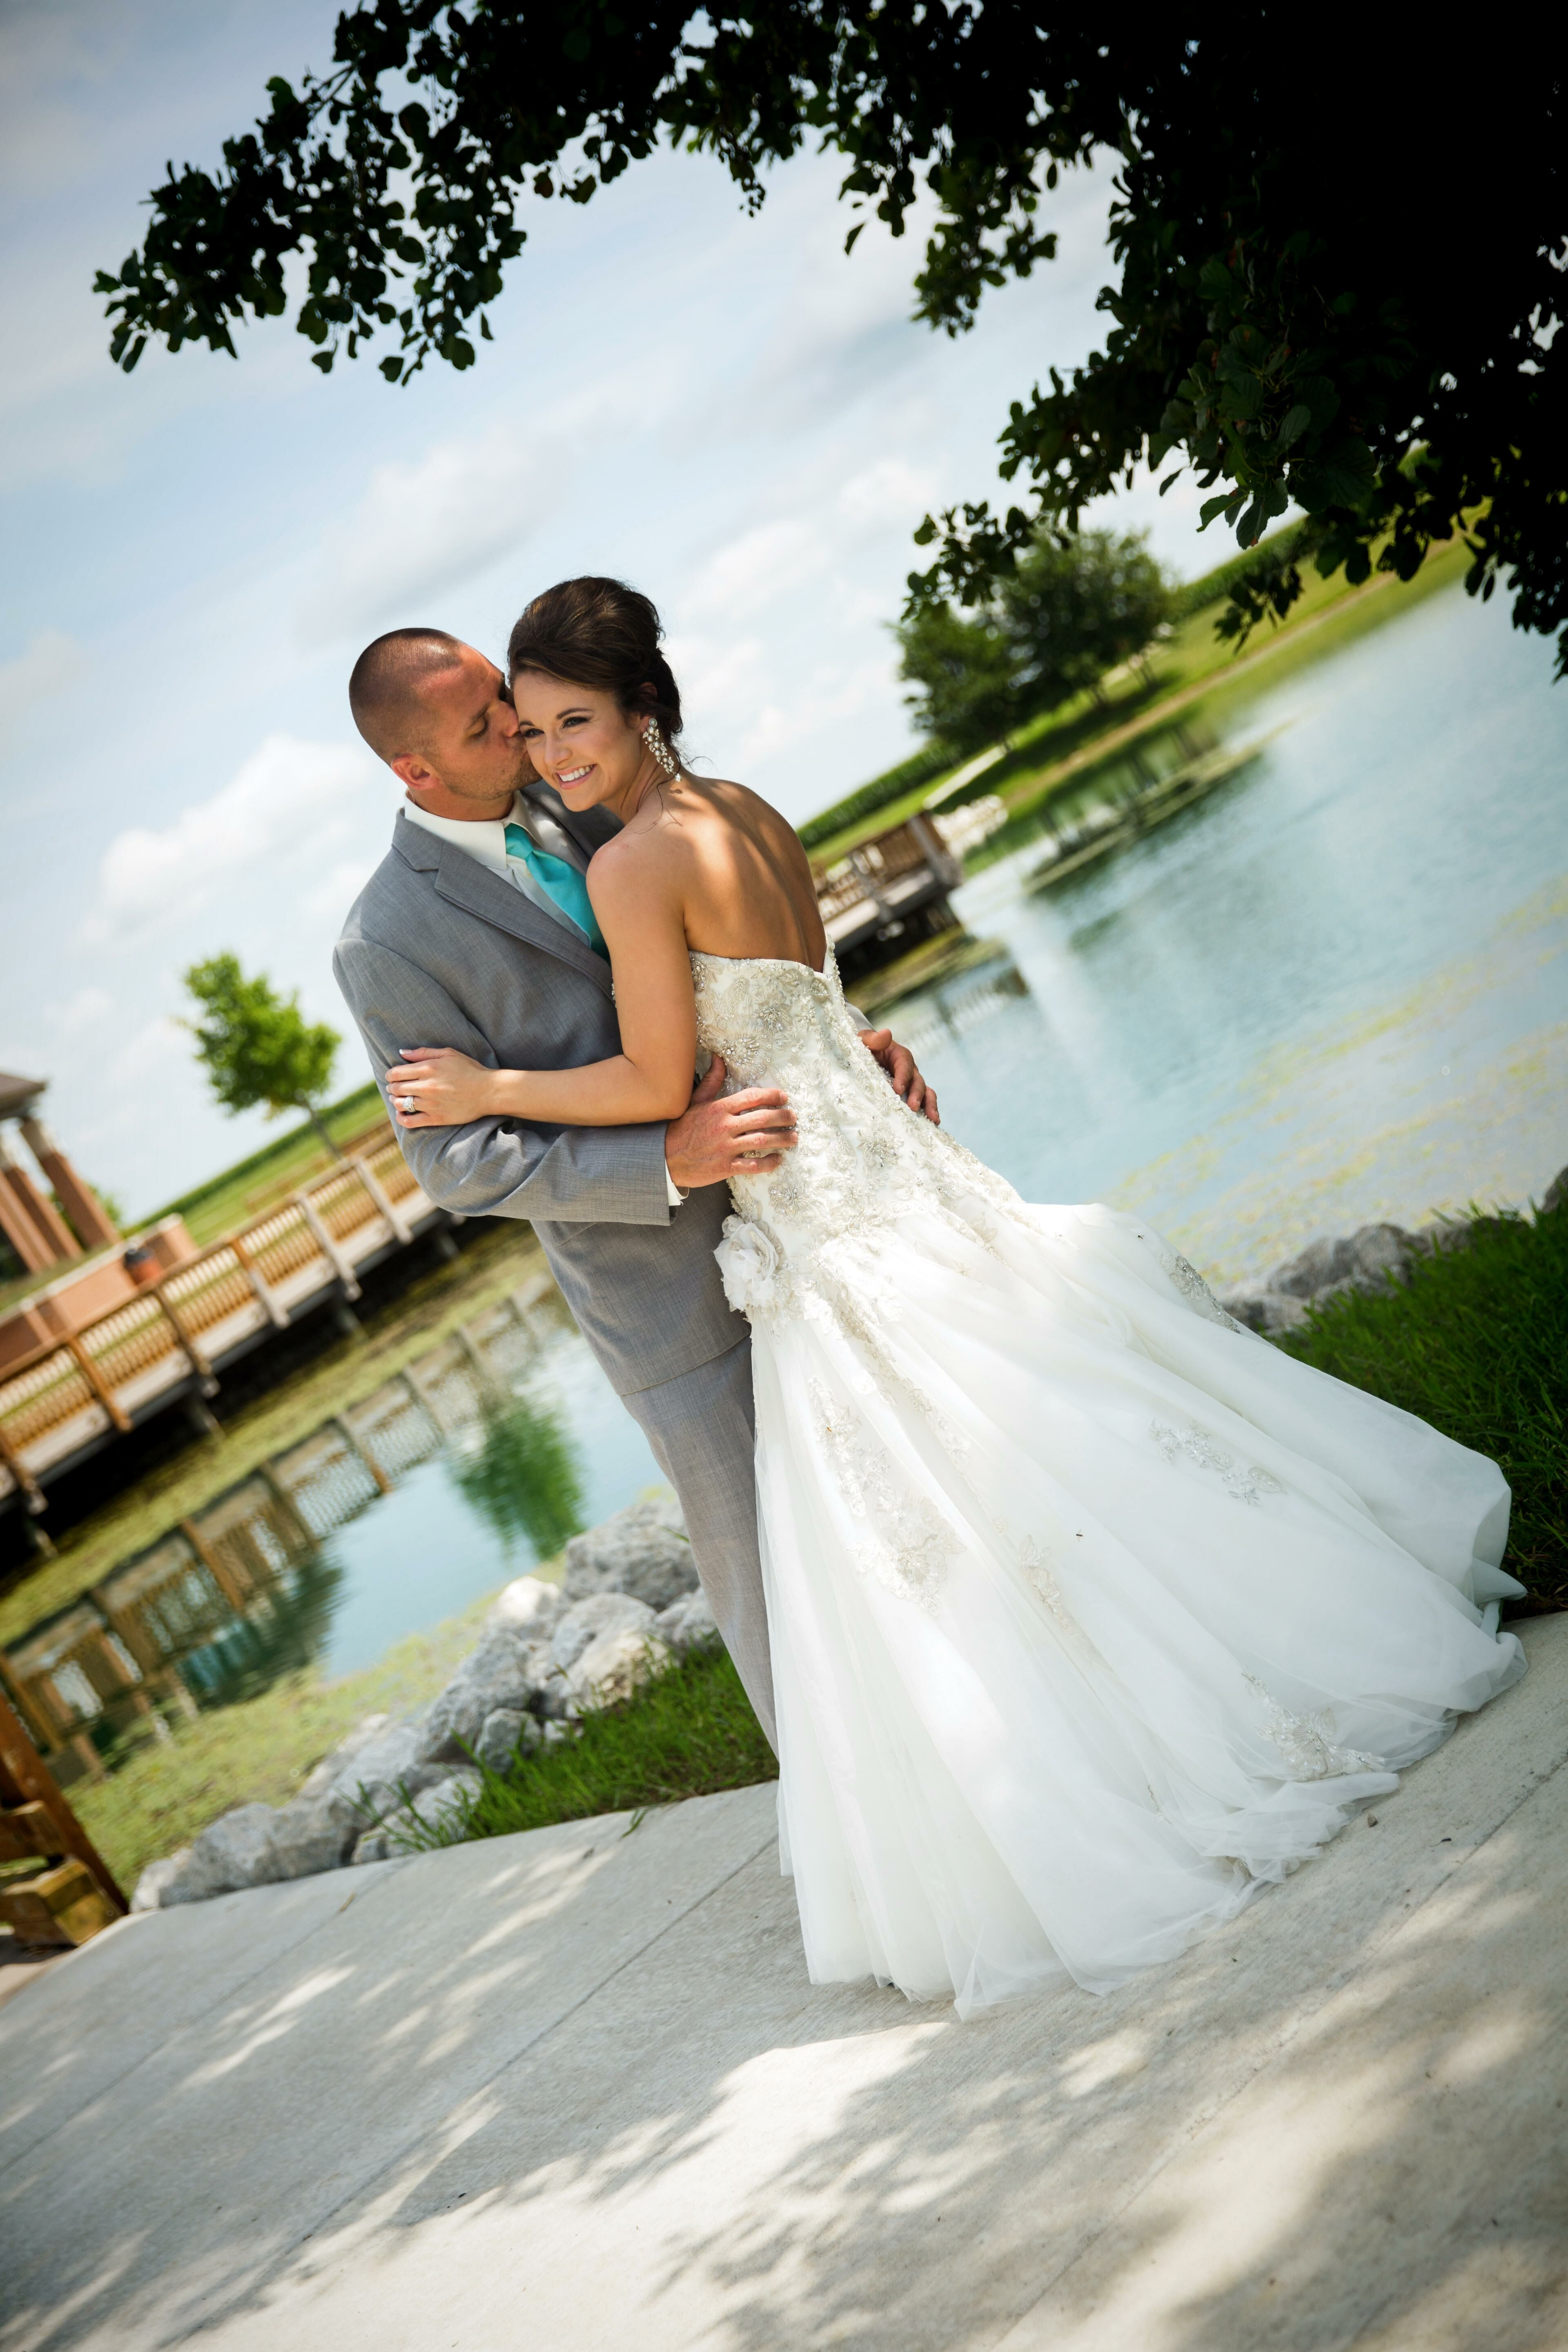 Complete weddings events st louis st louis mo for Wedding dress shops st louis mo